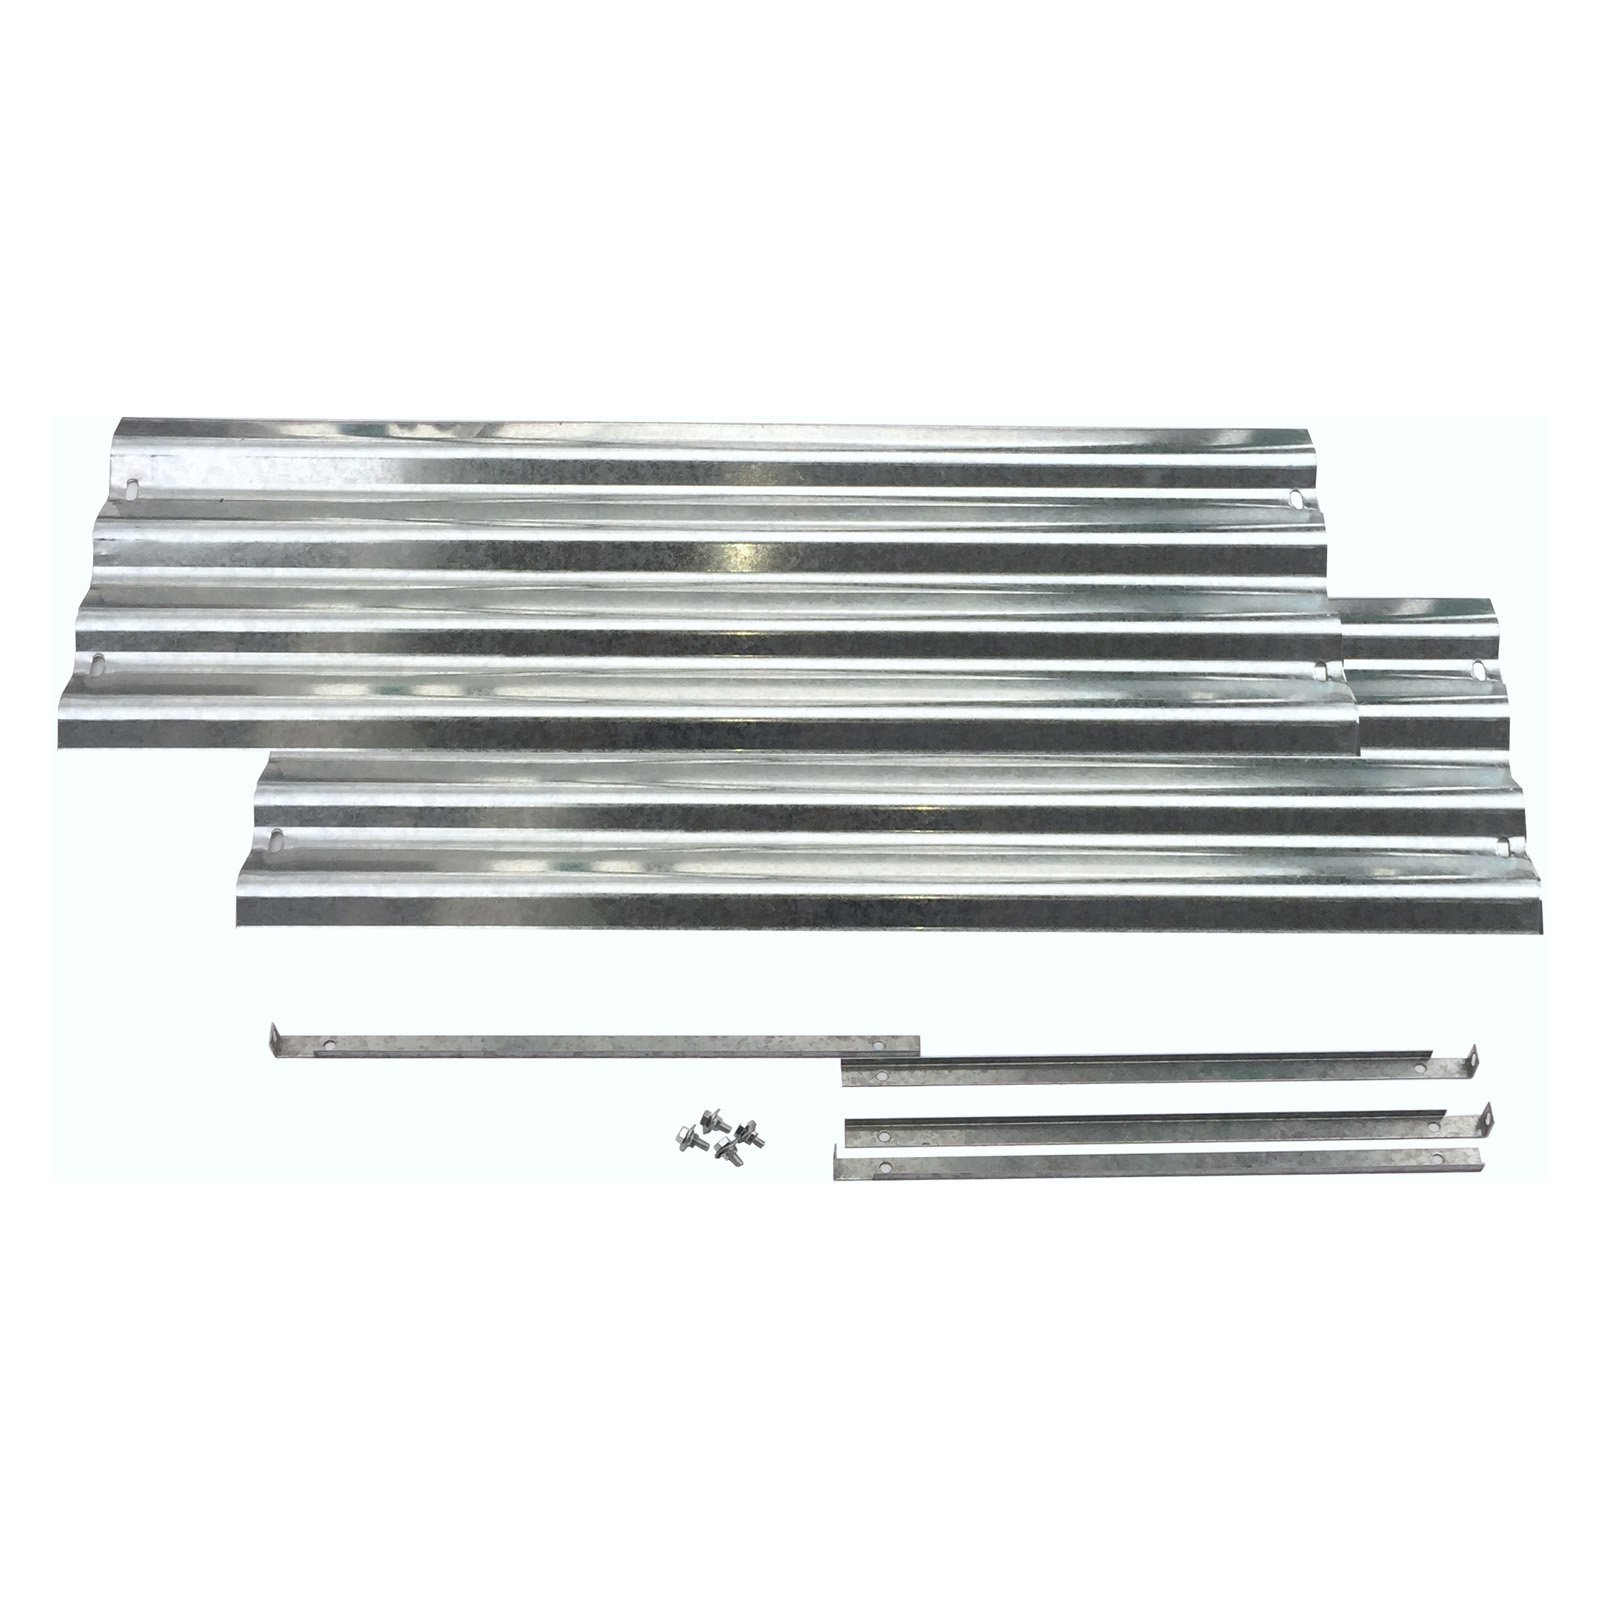 EarthMark Galvanized Low 36 in. Raised Garden Bed Extension Set